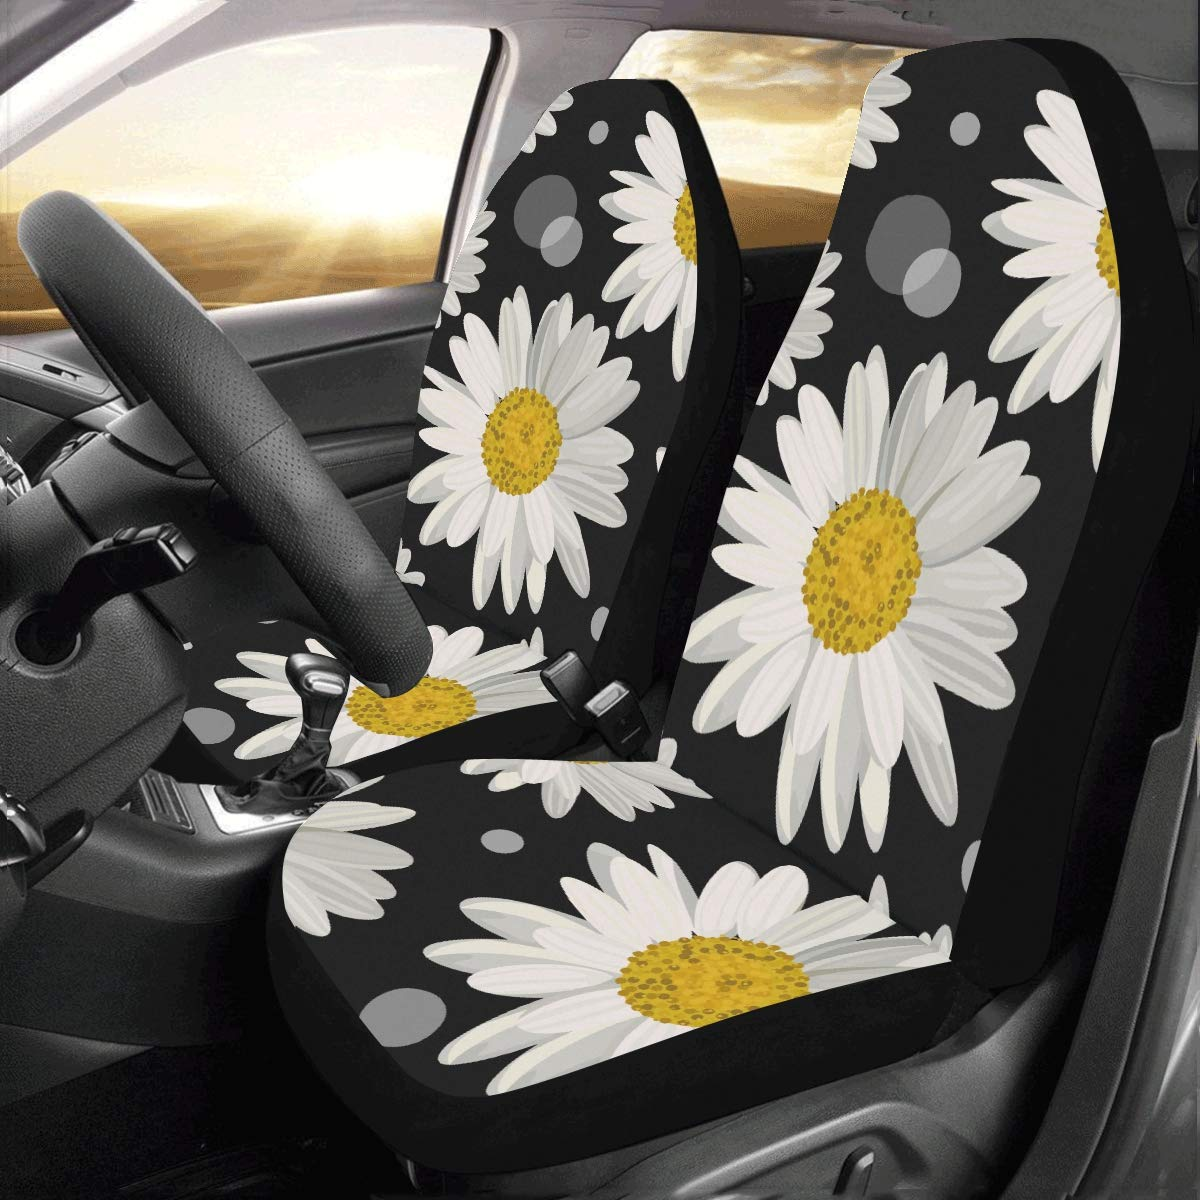 2pcs Car Seat Cover Universal Fit YELLOW